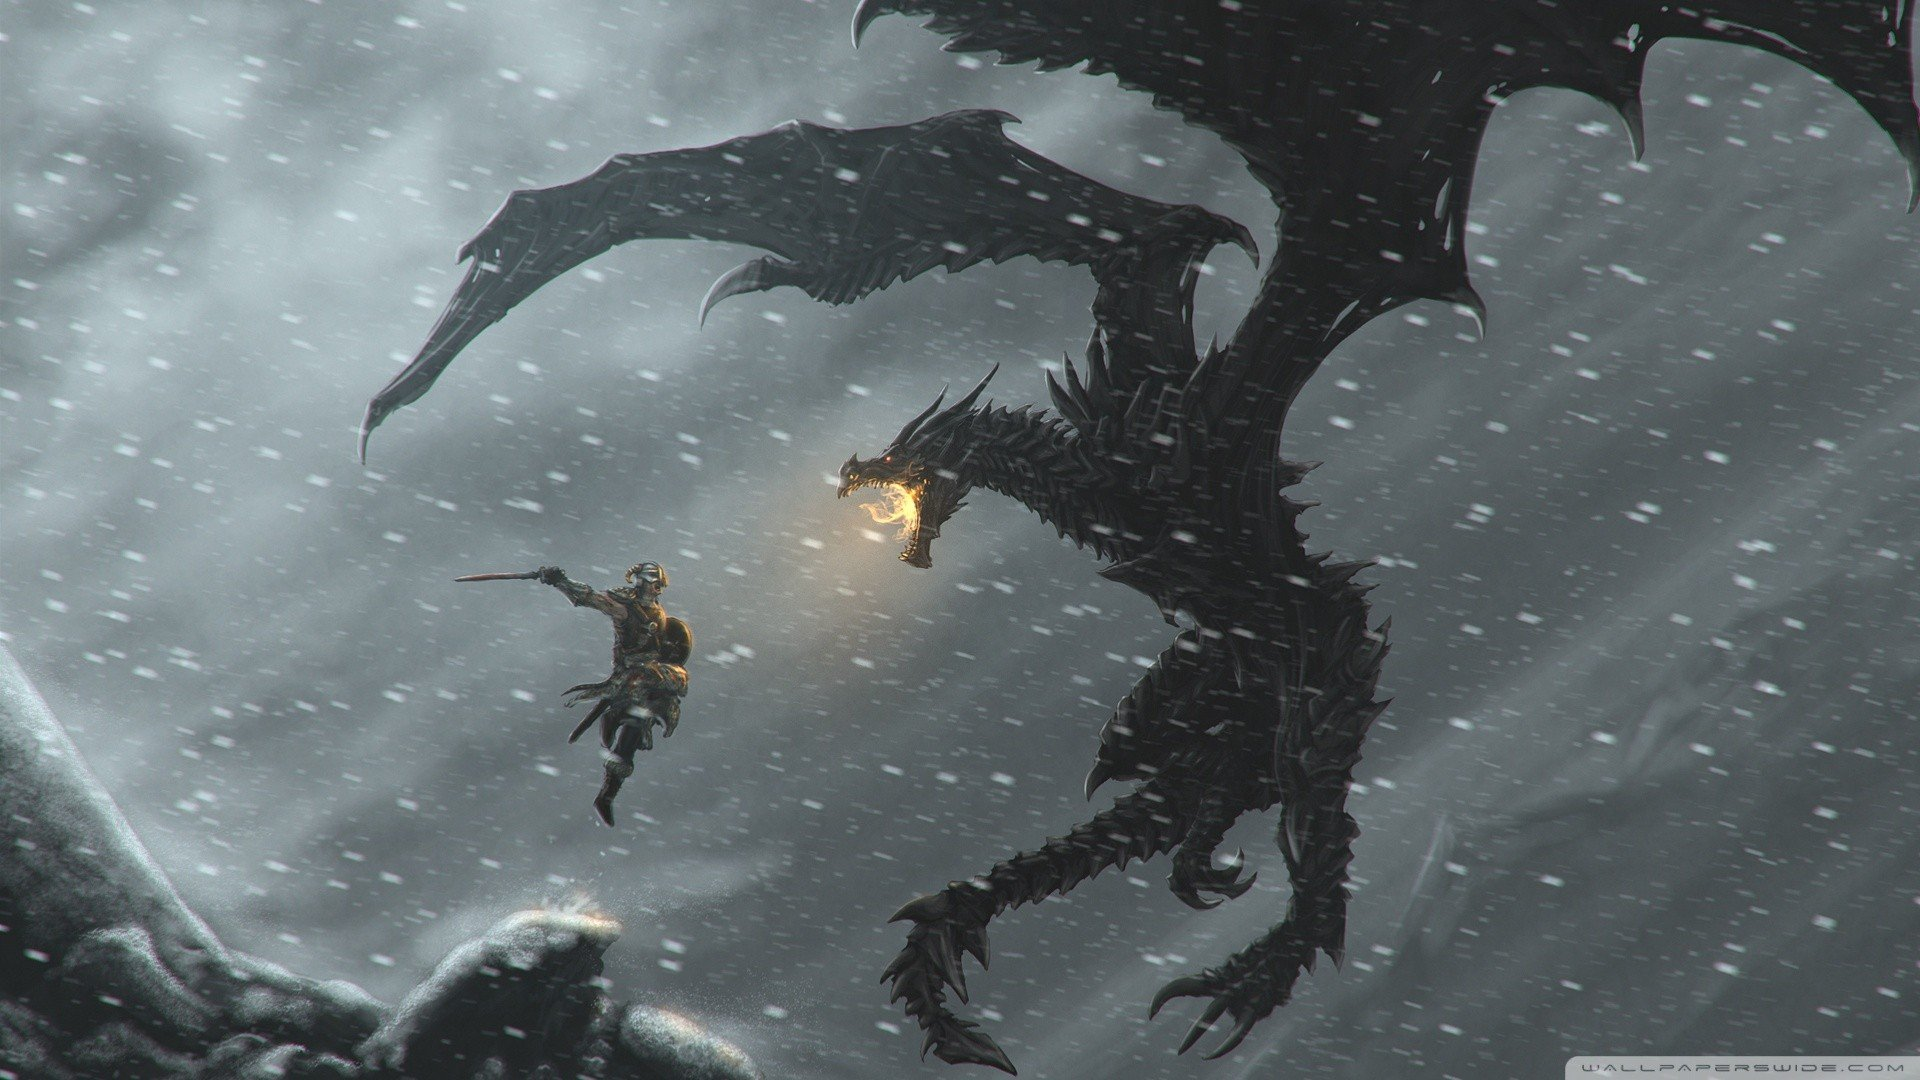 snow dragons fantasy art warriors The Elder Scrolls V: Skyrim